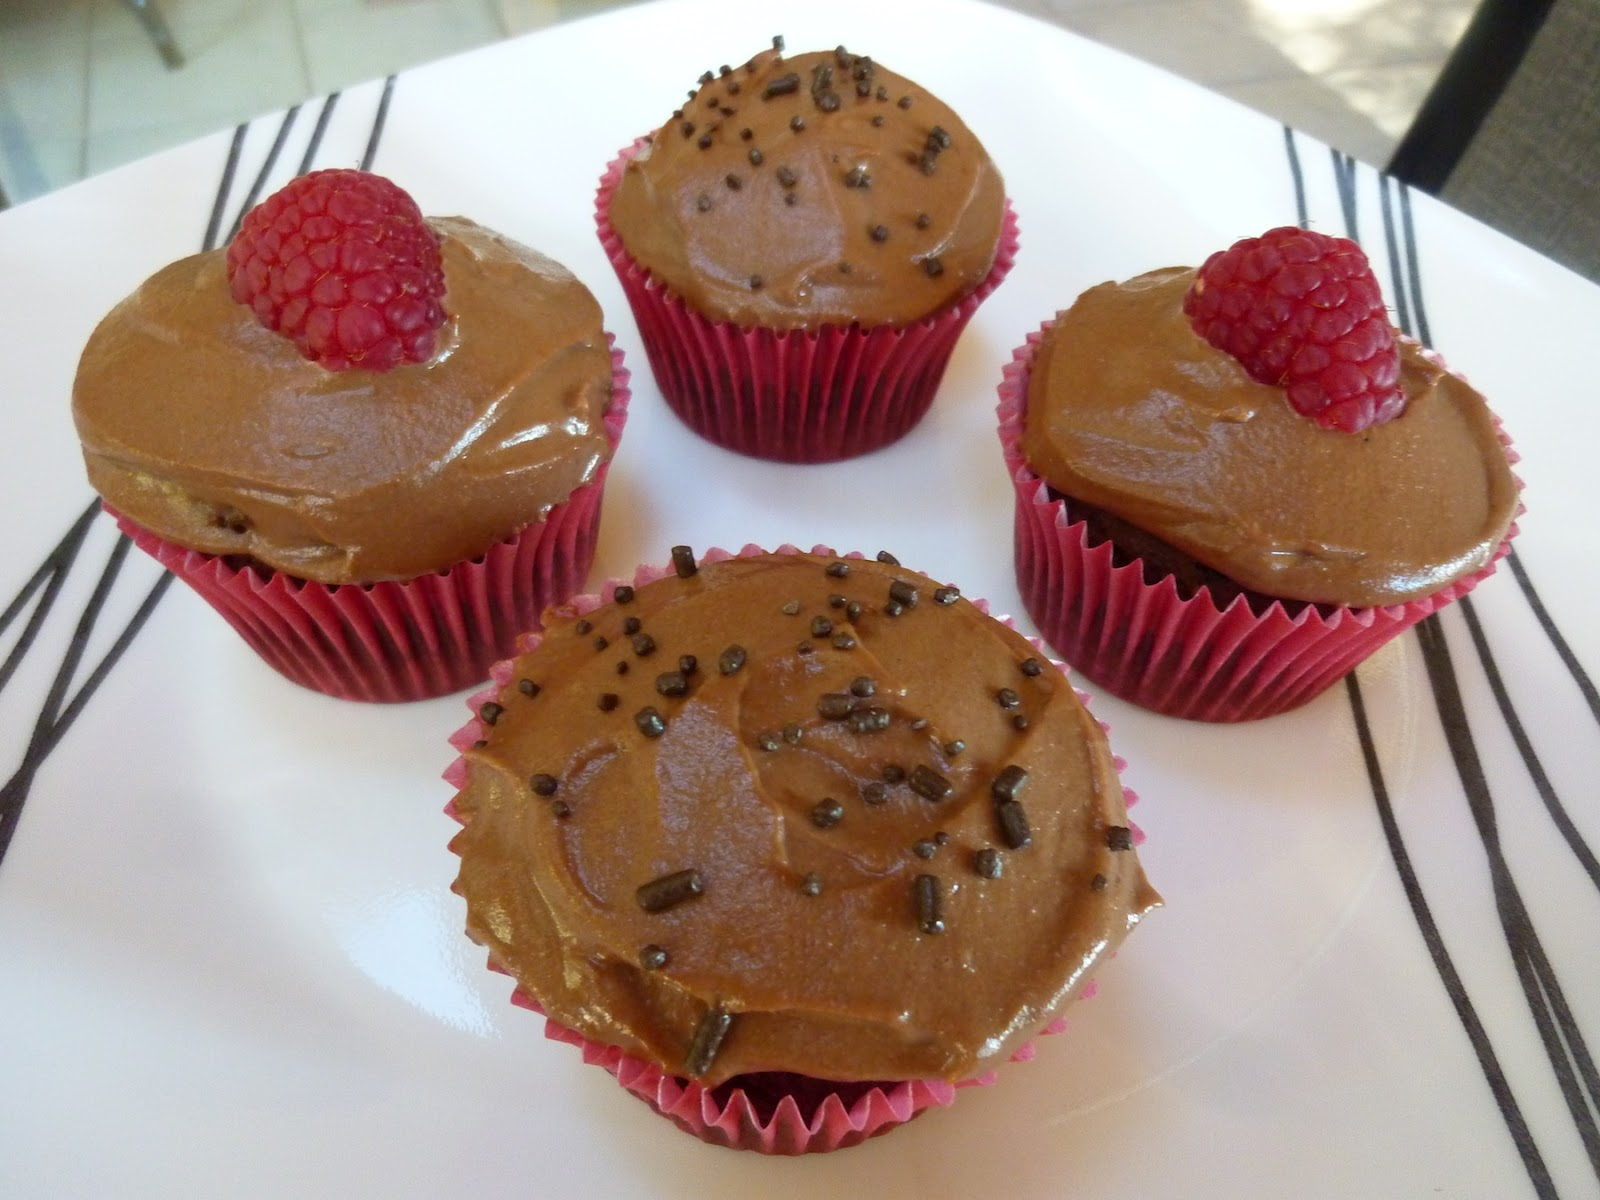 Chocolate Vegan Cupcakes With Chocolate Cashew Icing - A Dessert For ...